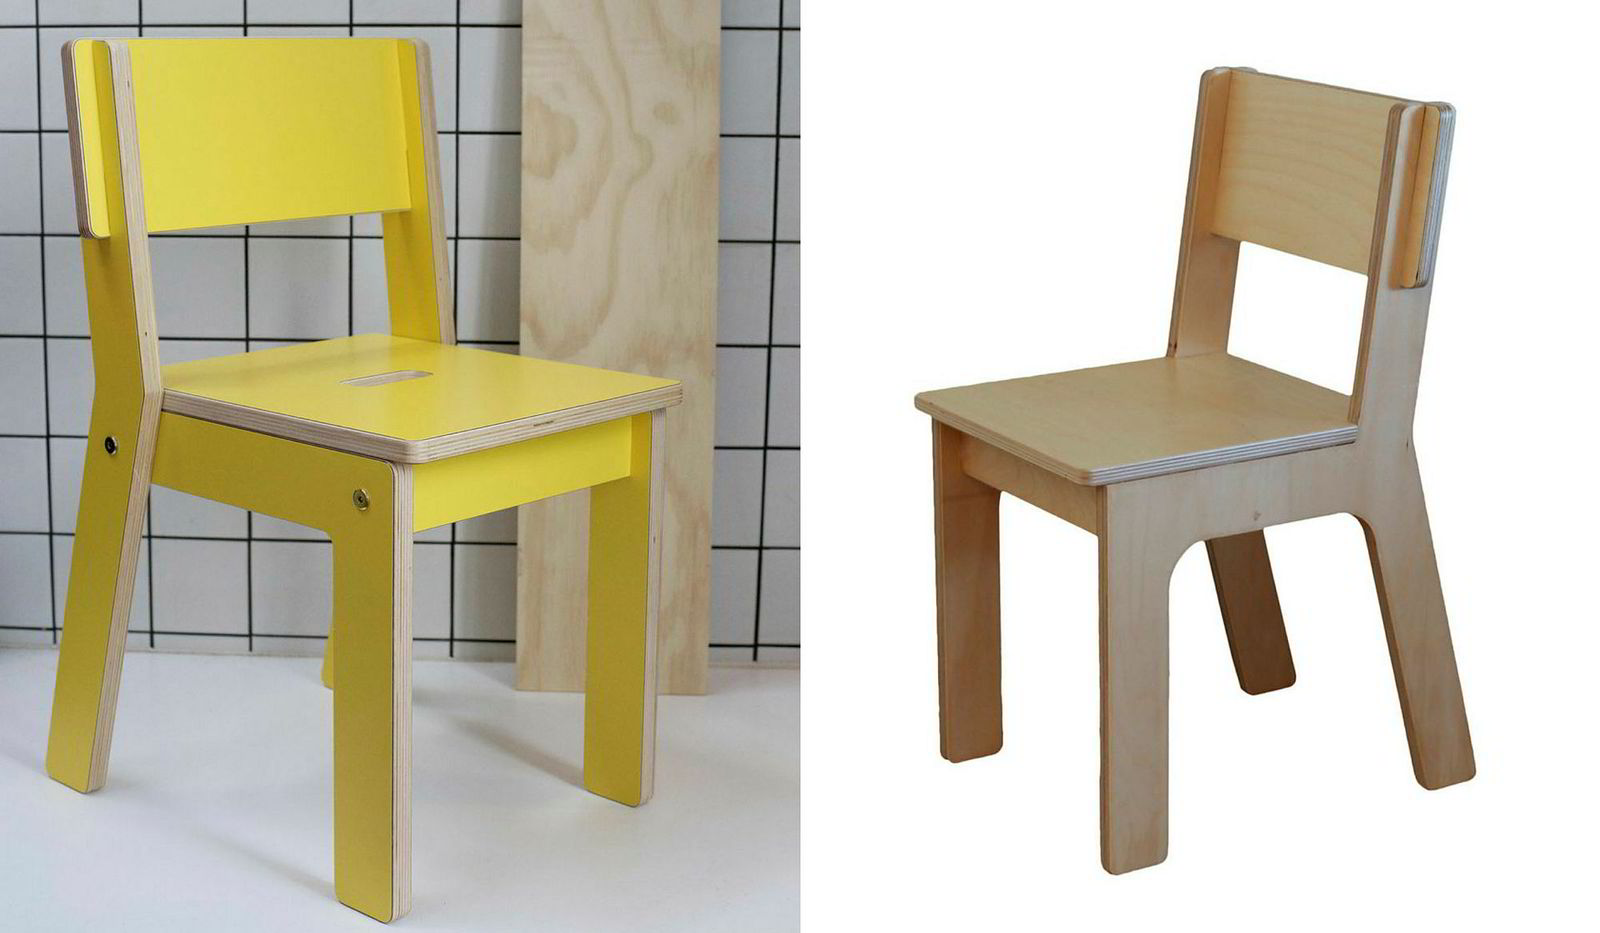 To the left is Kinkelian's edition of the chair designed by Sivertsen and furniture designer Karl Marius Sveen. On the right is the one she thinks One Wood has copied, and is sold on Krogsæter's websites.